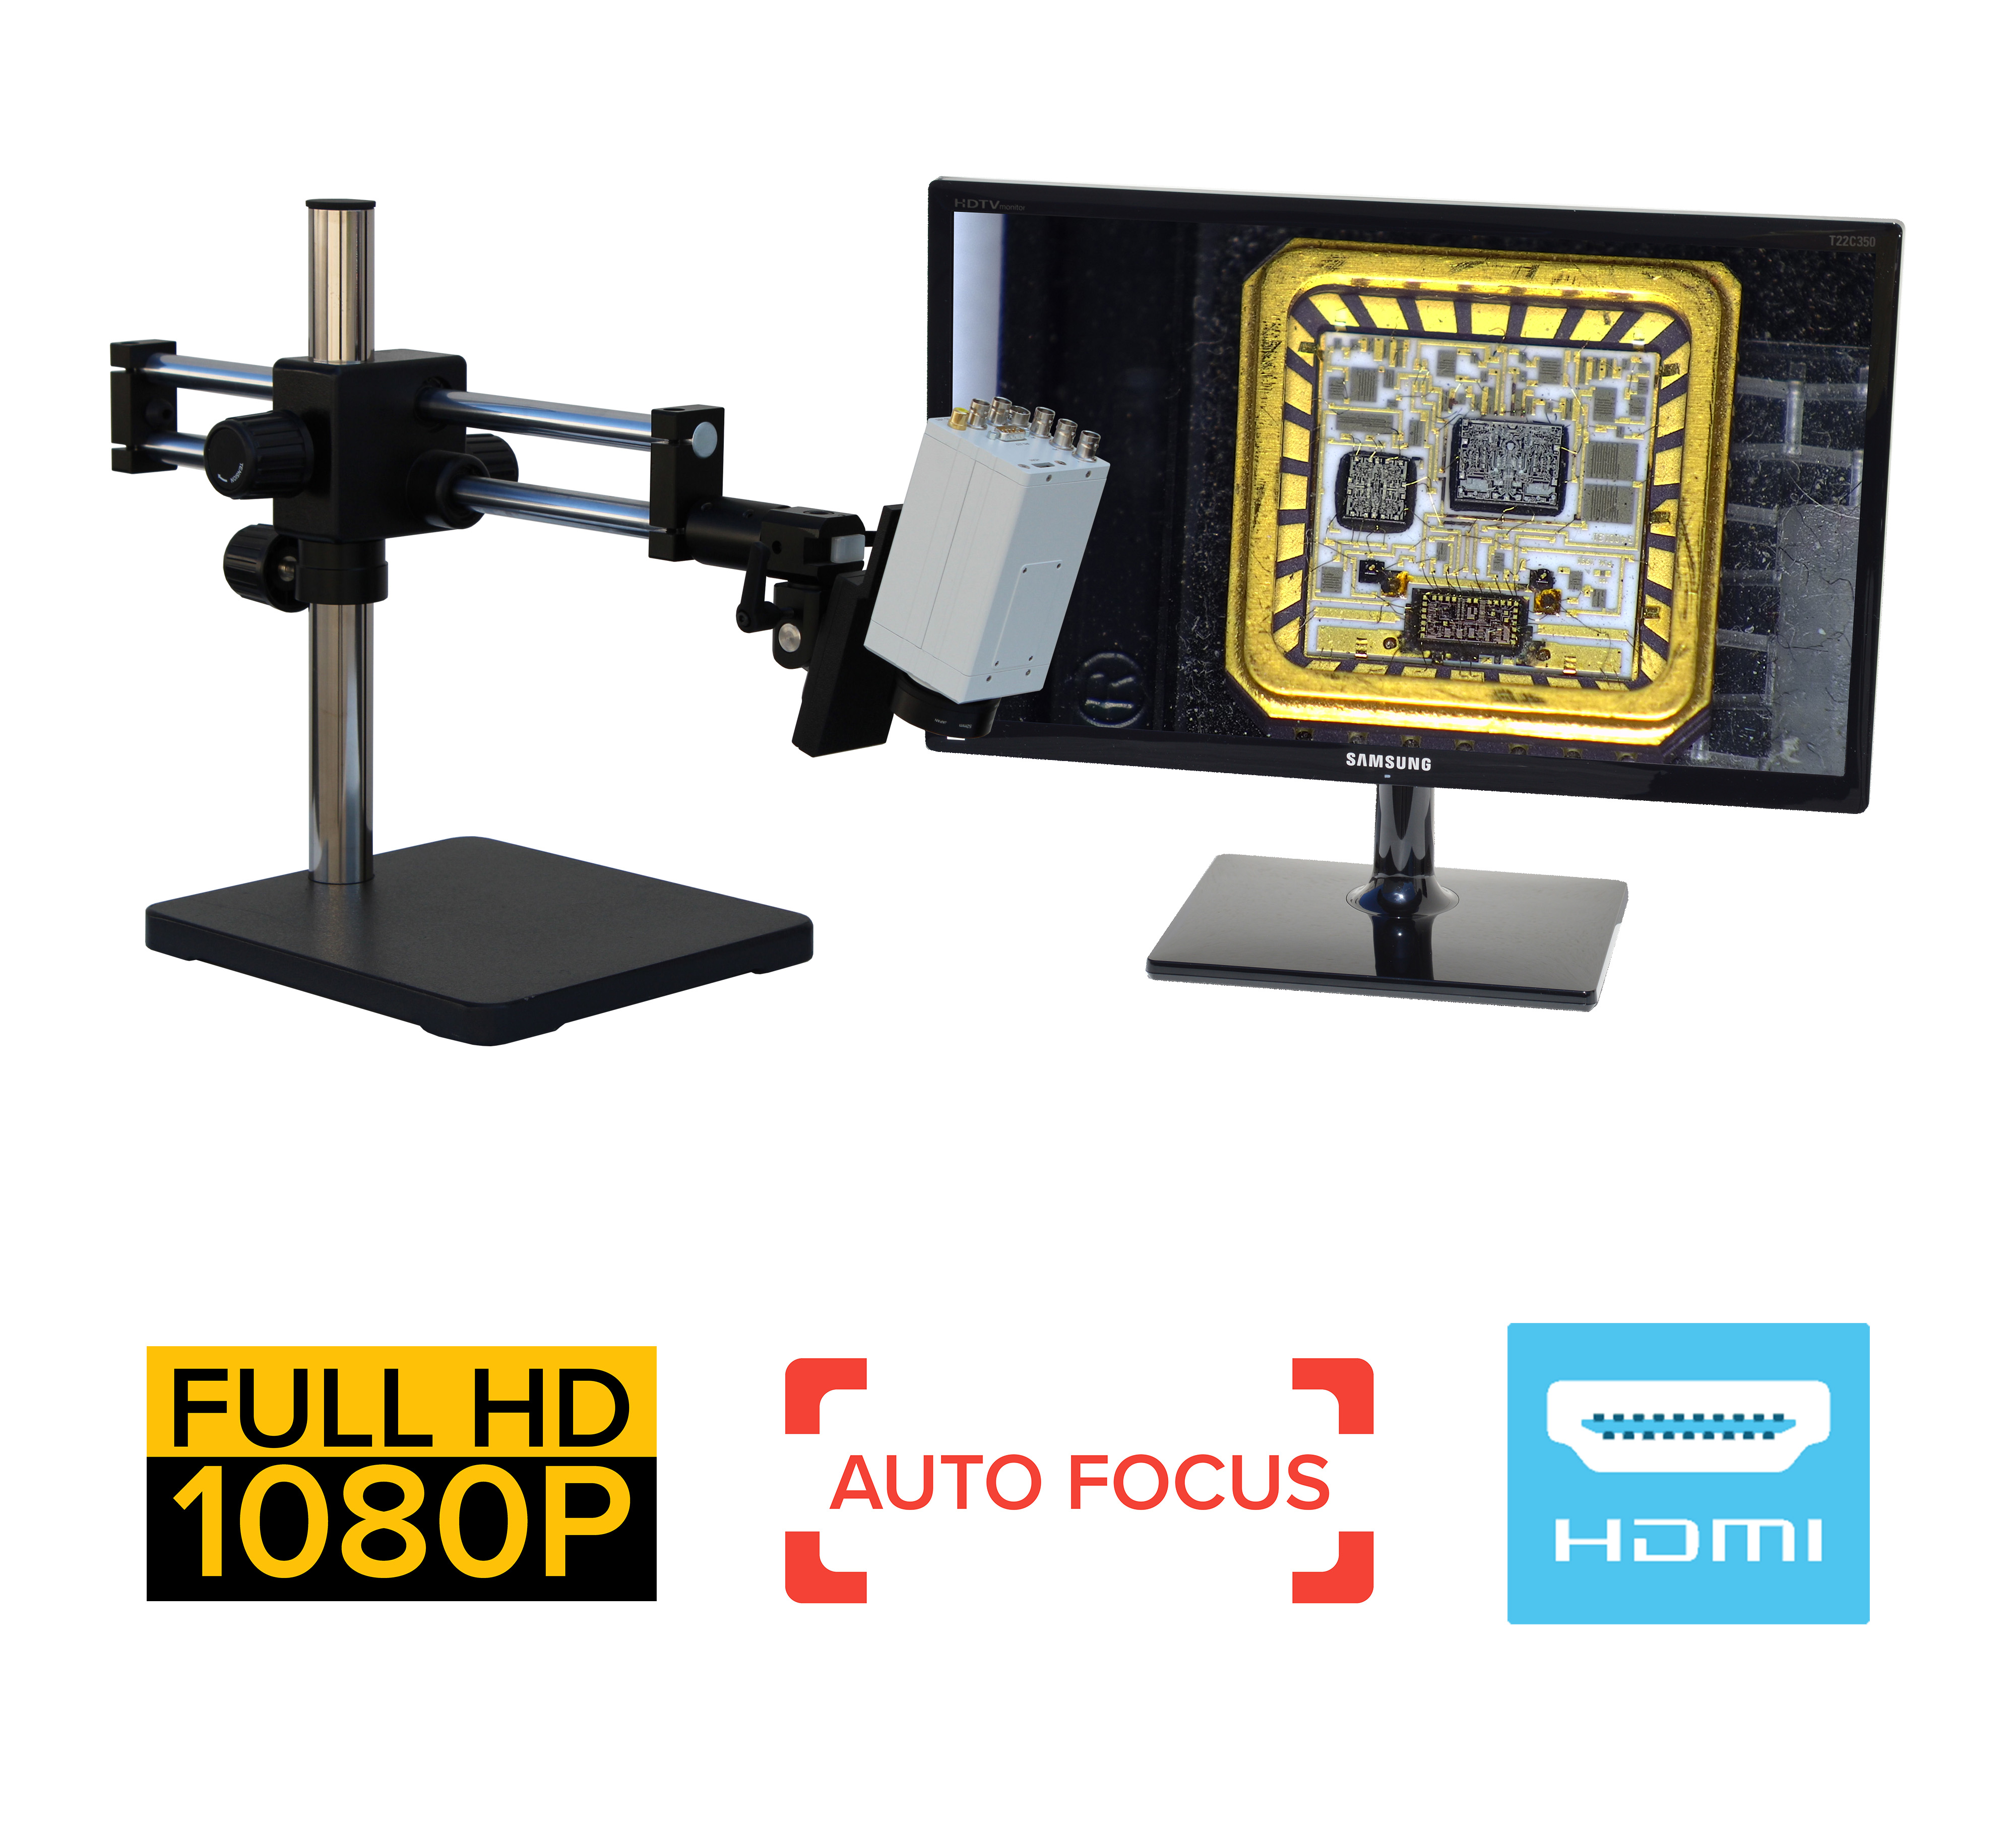 eHDAF900 series 2.5x-105x standard Auto Focus + HD 1080p + USB + Measurement Option [Start at $4995]